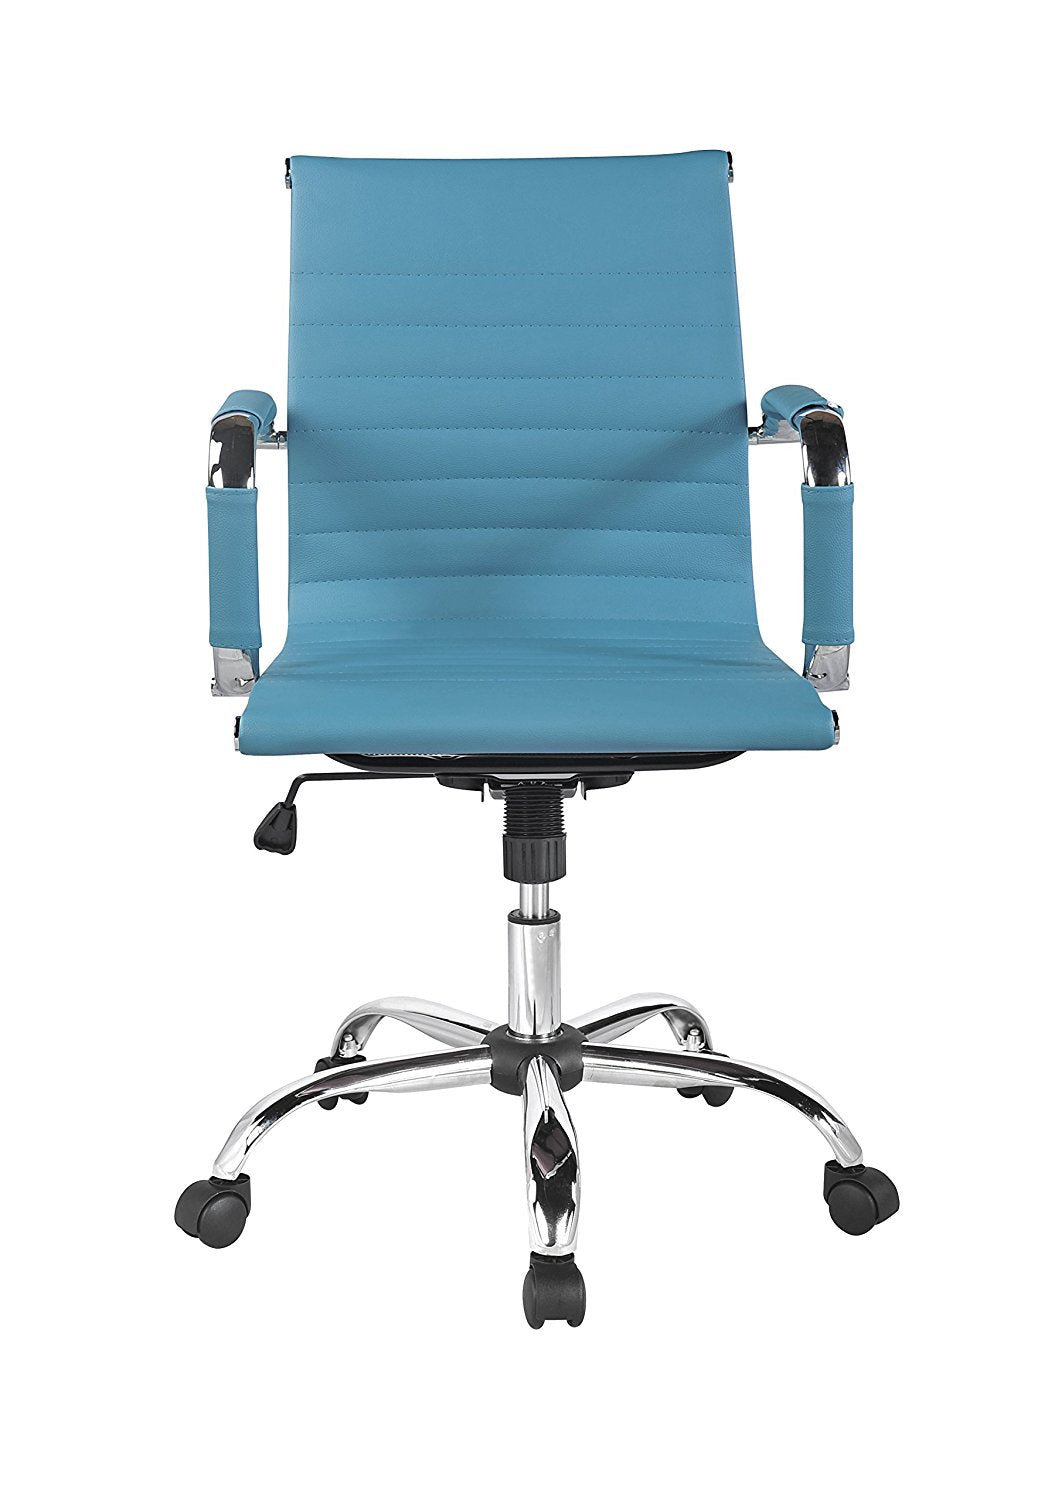 Incredible Winport Mid Back Leather Executive Office Desk Chair 5051L Dailytribune Chair Design For Home Dailytribuneorg